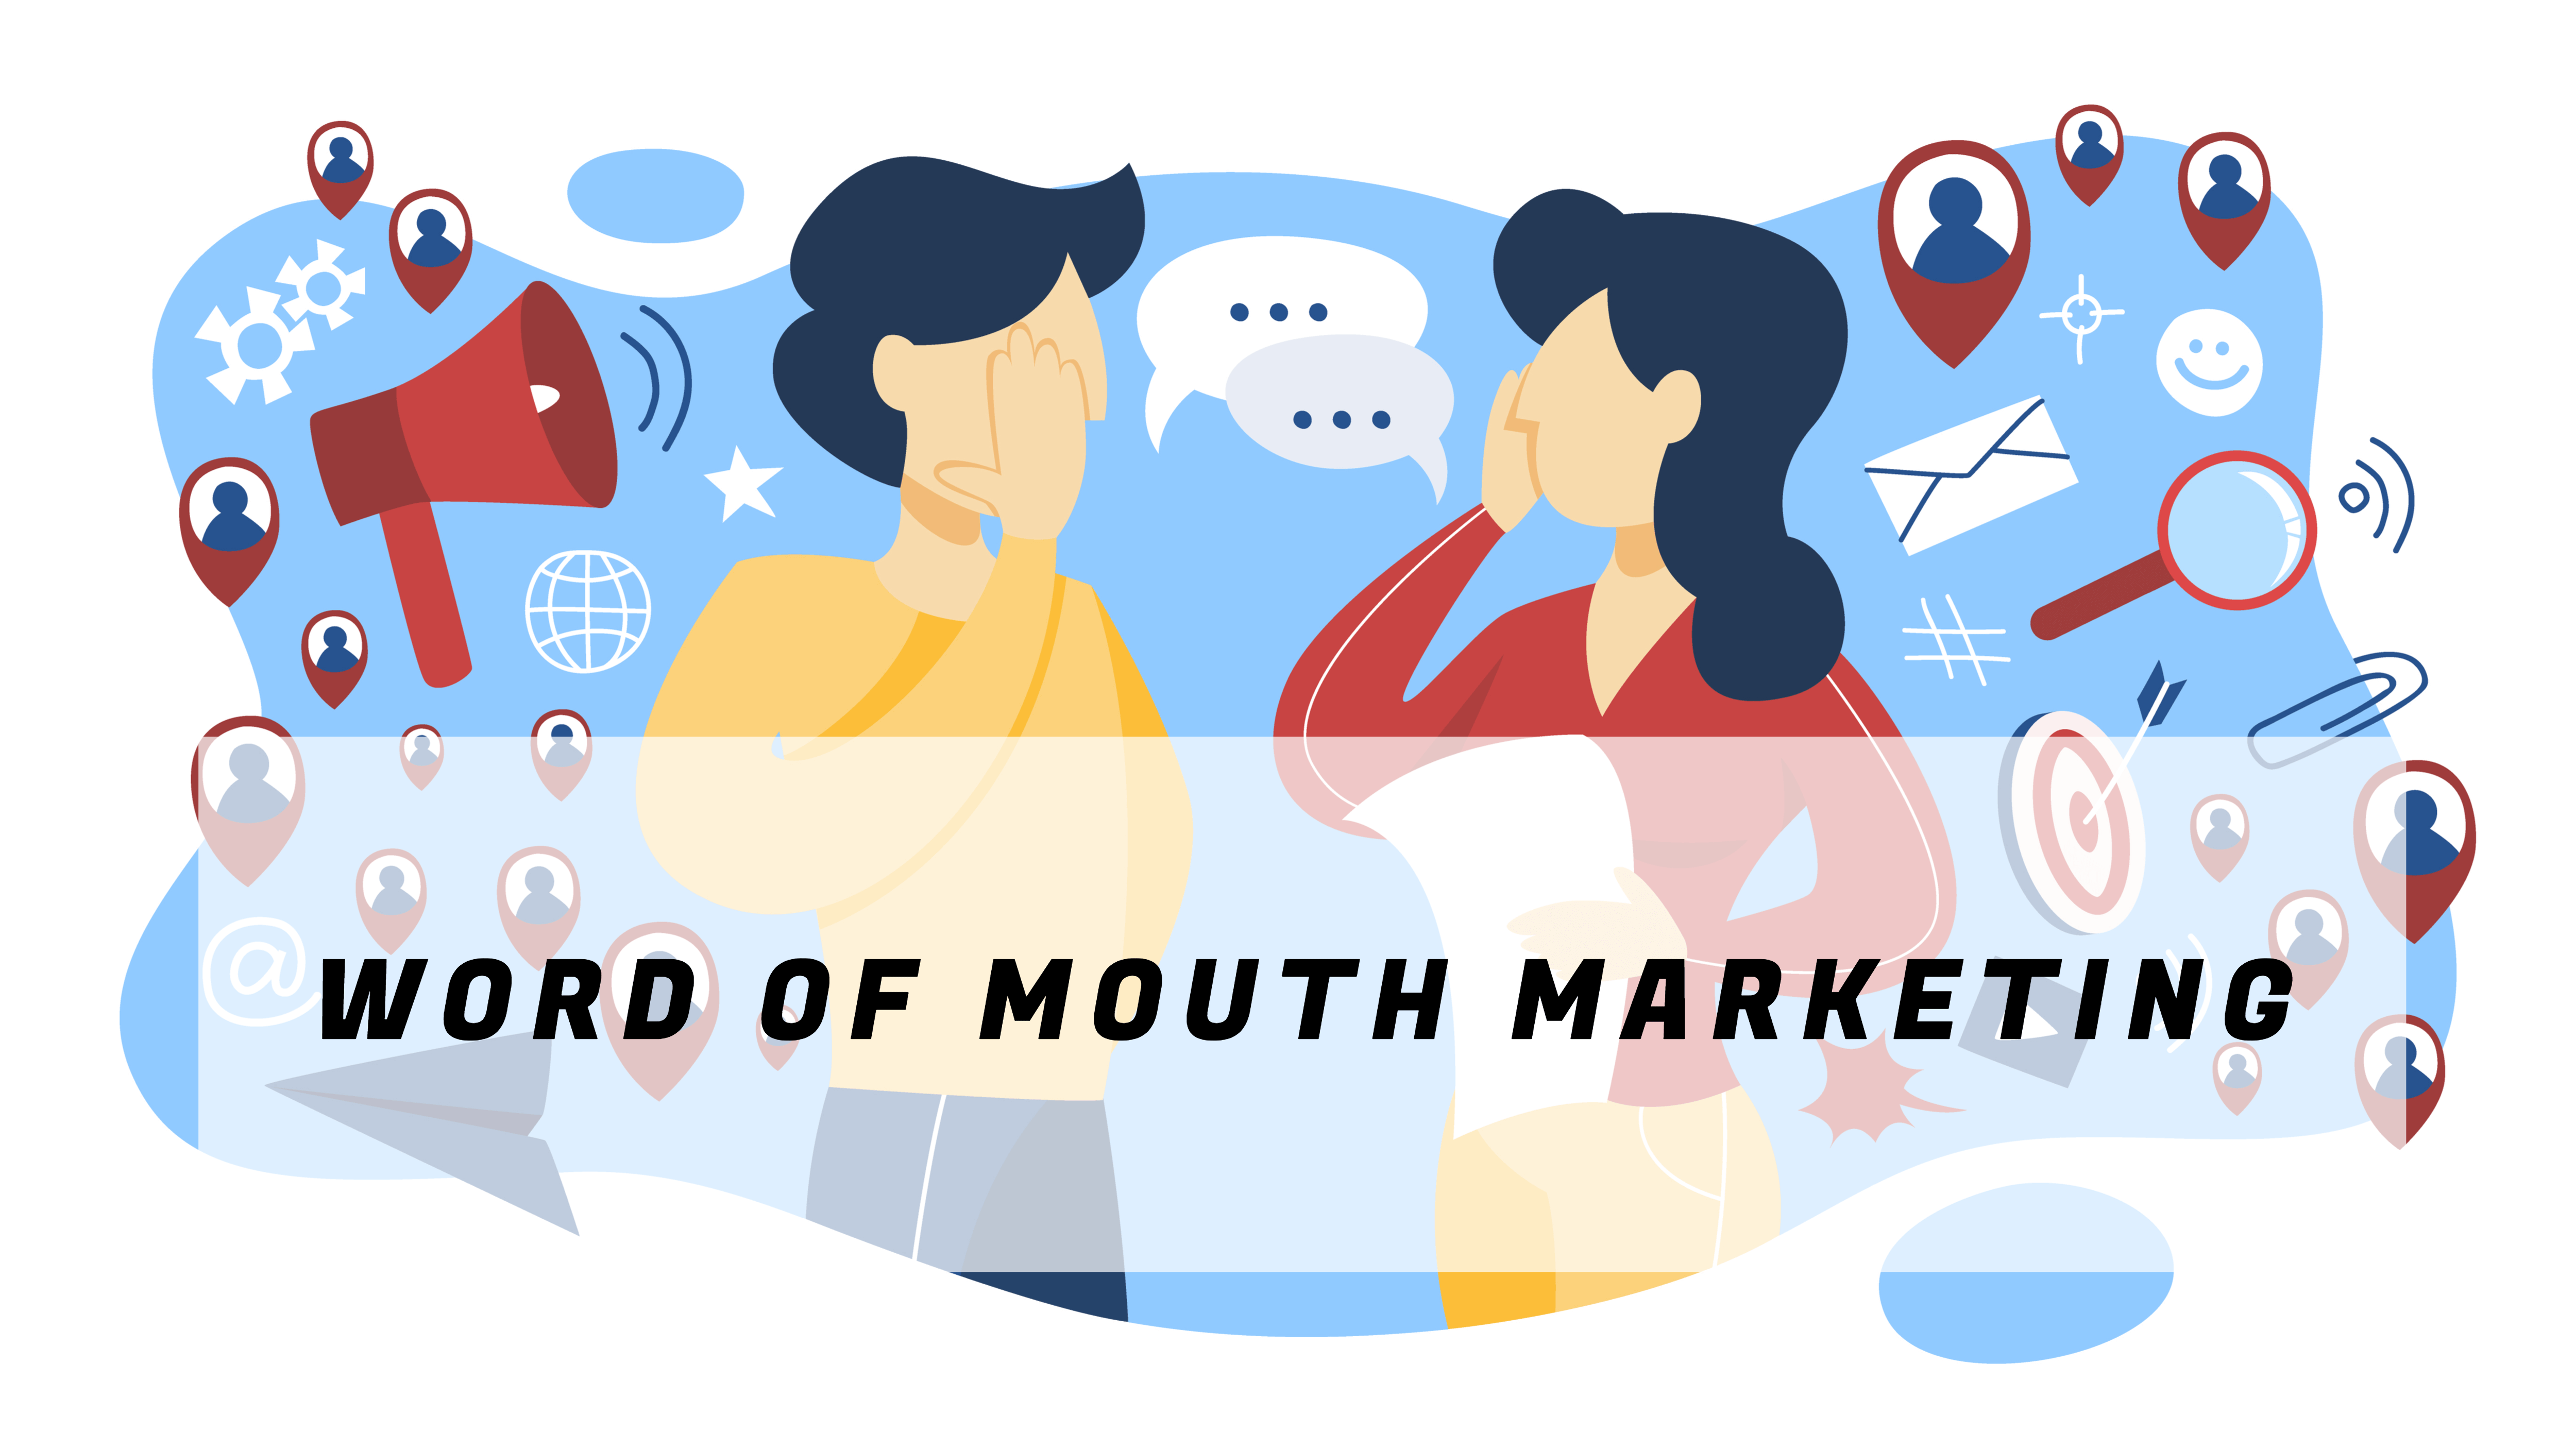 Word of mouth marketing, 口碑行銷